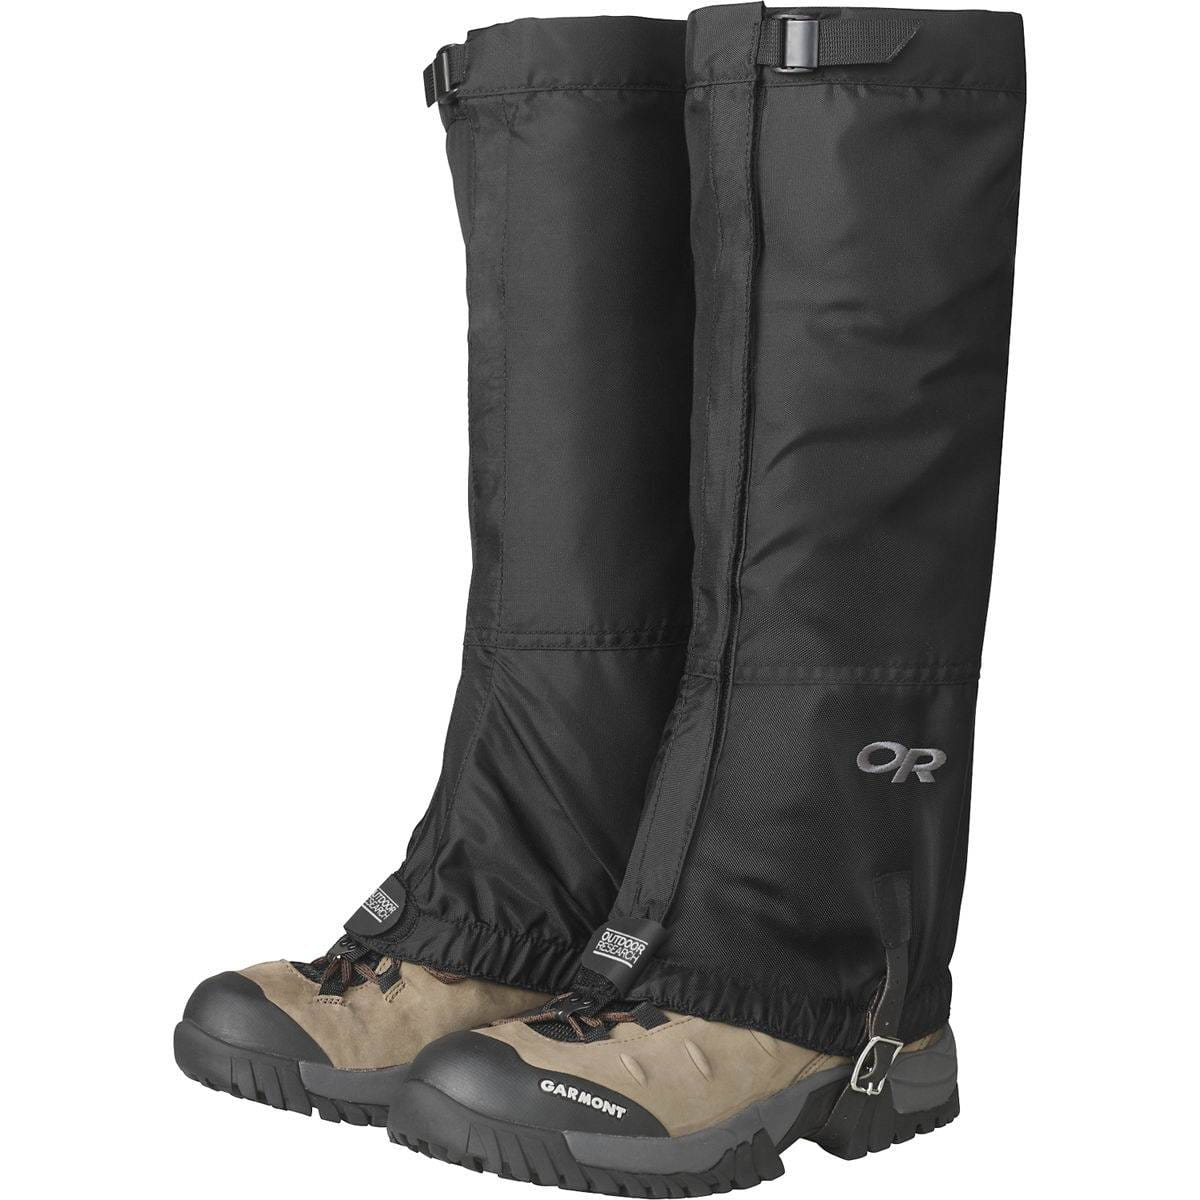 Outdoor Research Men's Rocky Mountain High Gaiters - Gamaschen - Bild 1